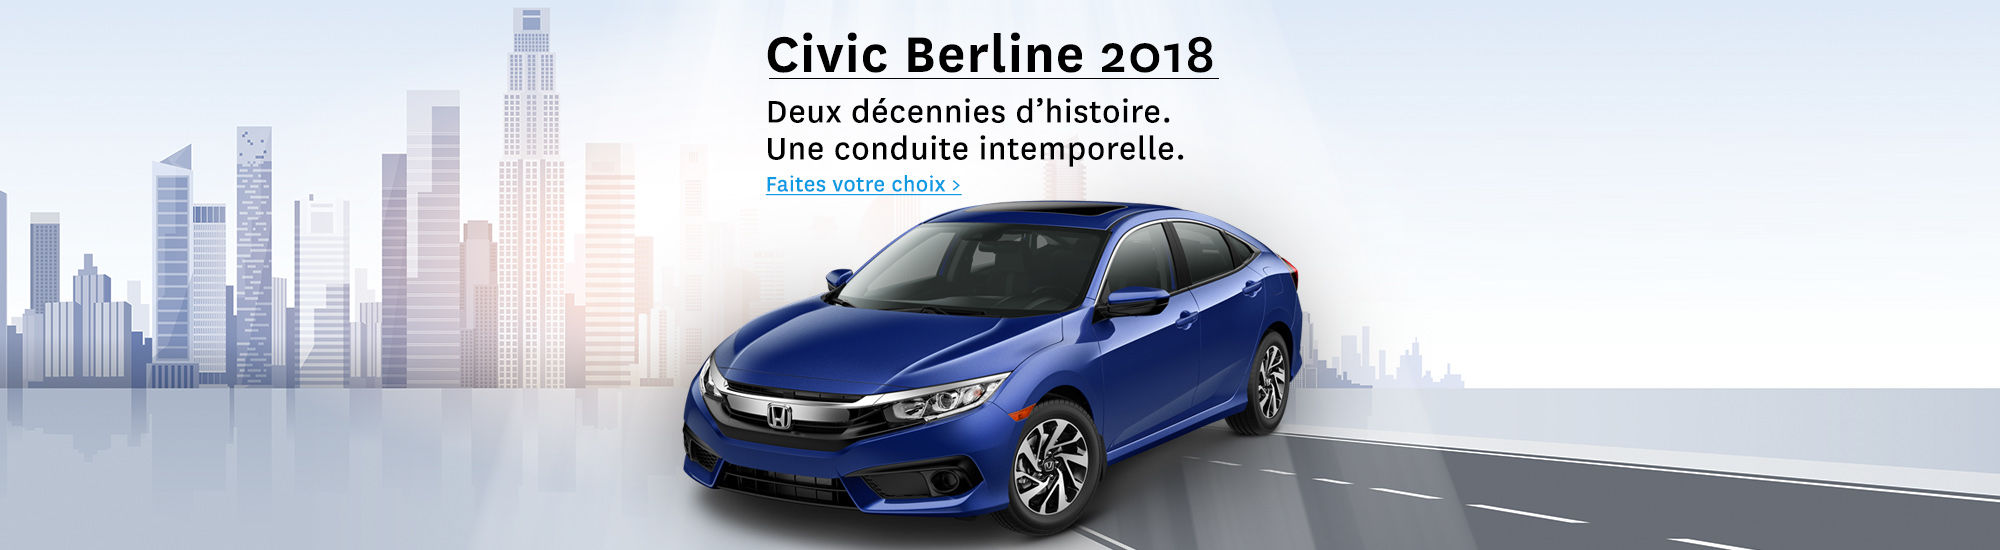 Civic berline 2018